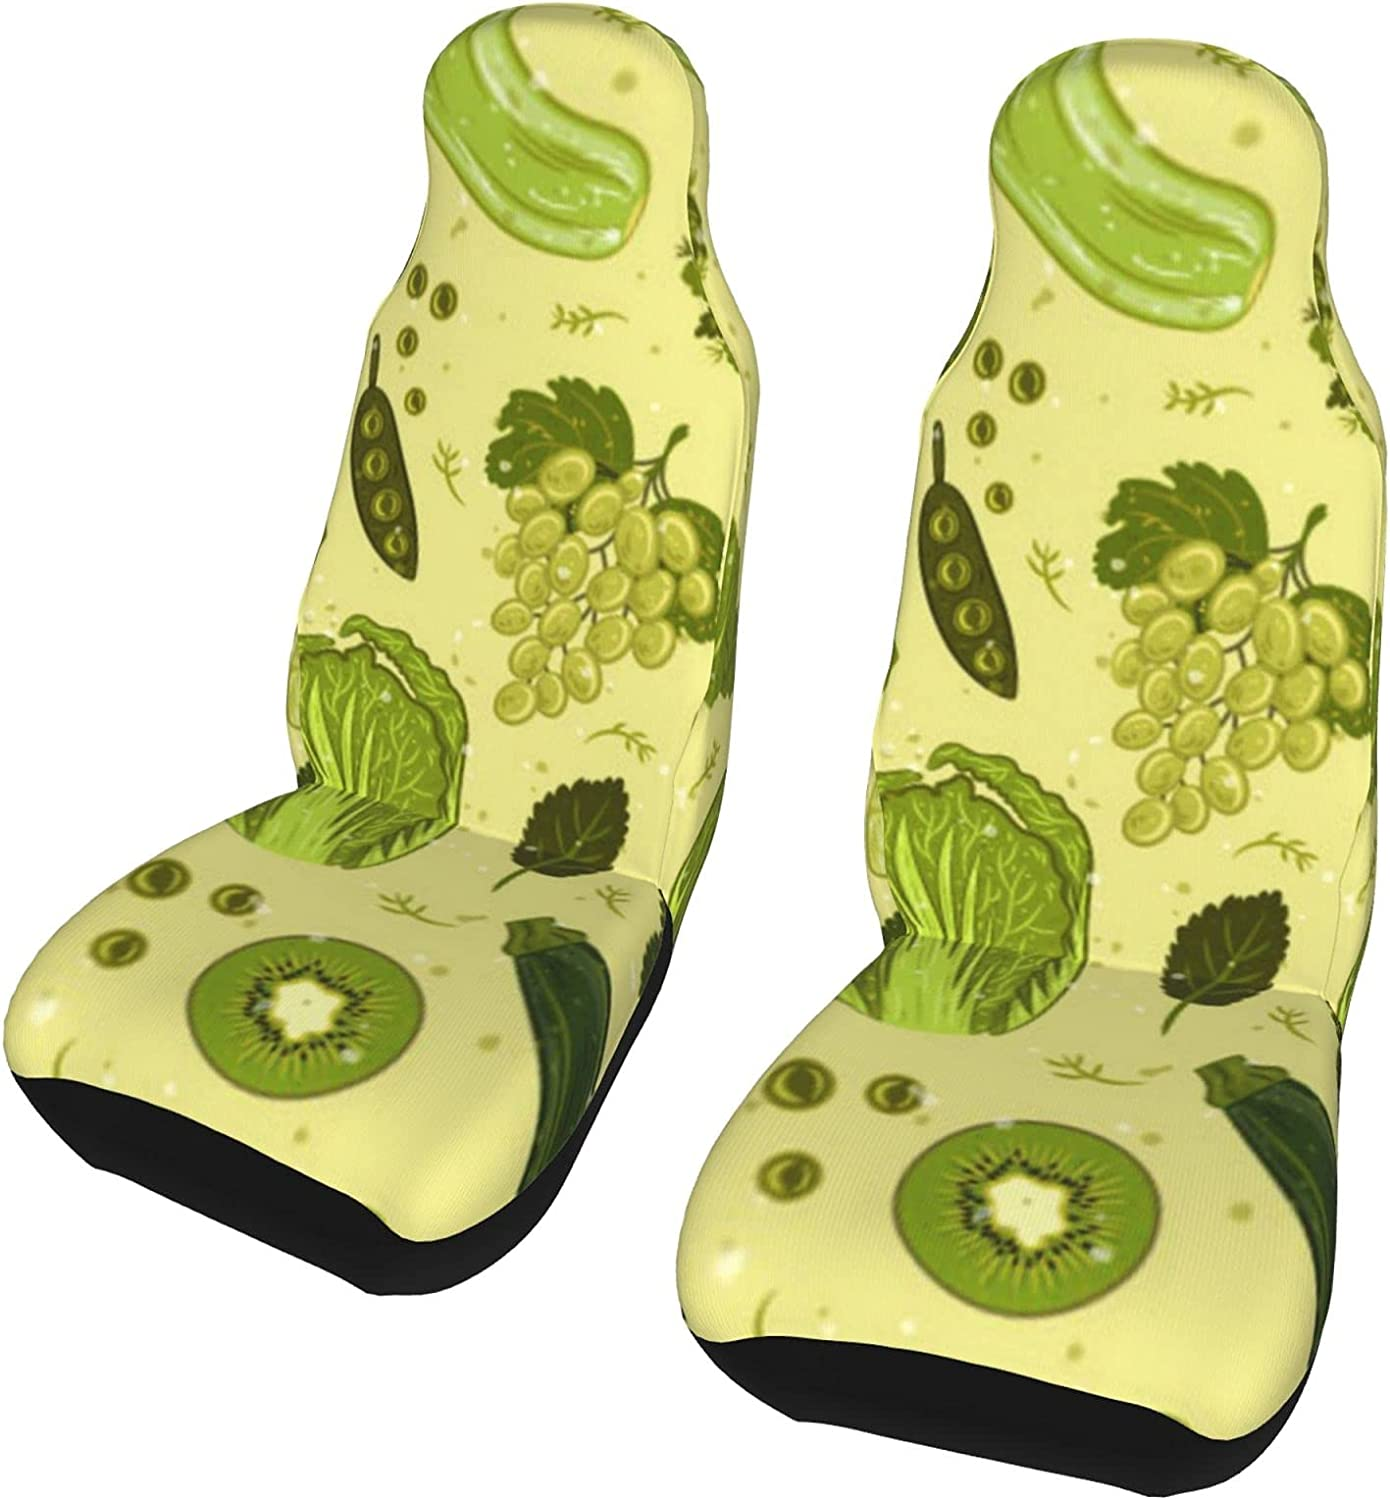 Inrubie Beautiful Green Super special price Fruits Vegetables 2 Seat Car Covers Pcs Free shipping